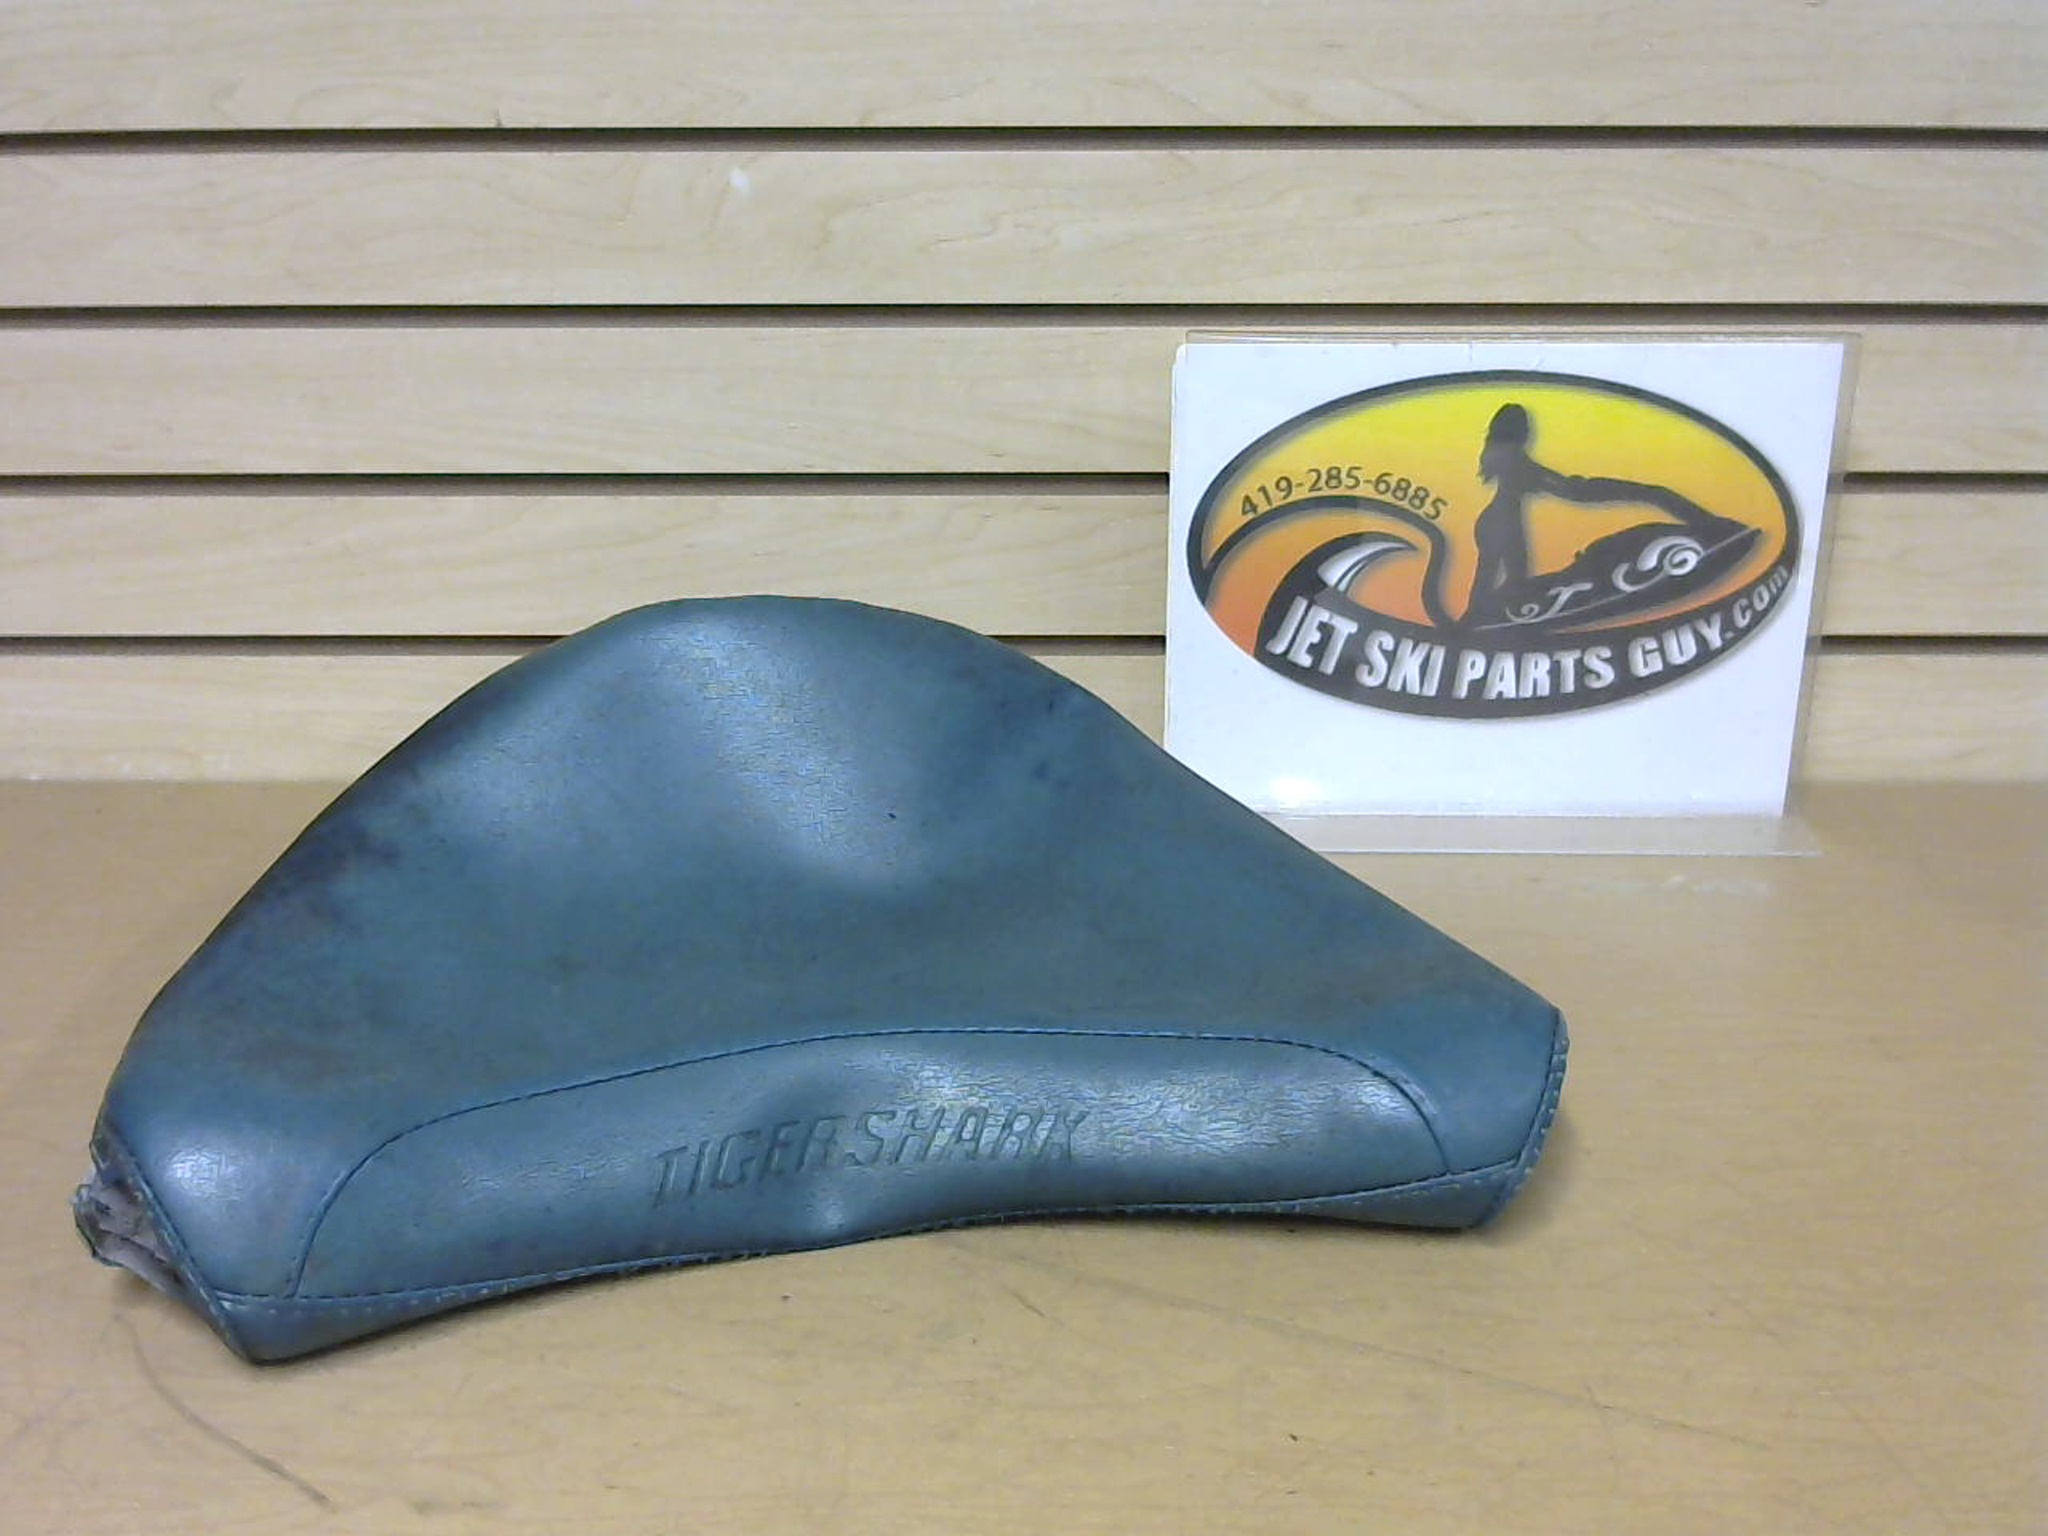 1997 Tigershark Monte Carlo 770 Handlebar Cover without Pad 0773-848